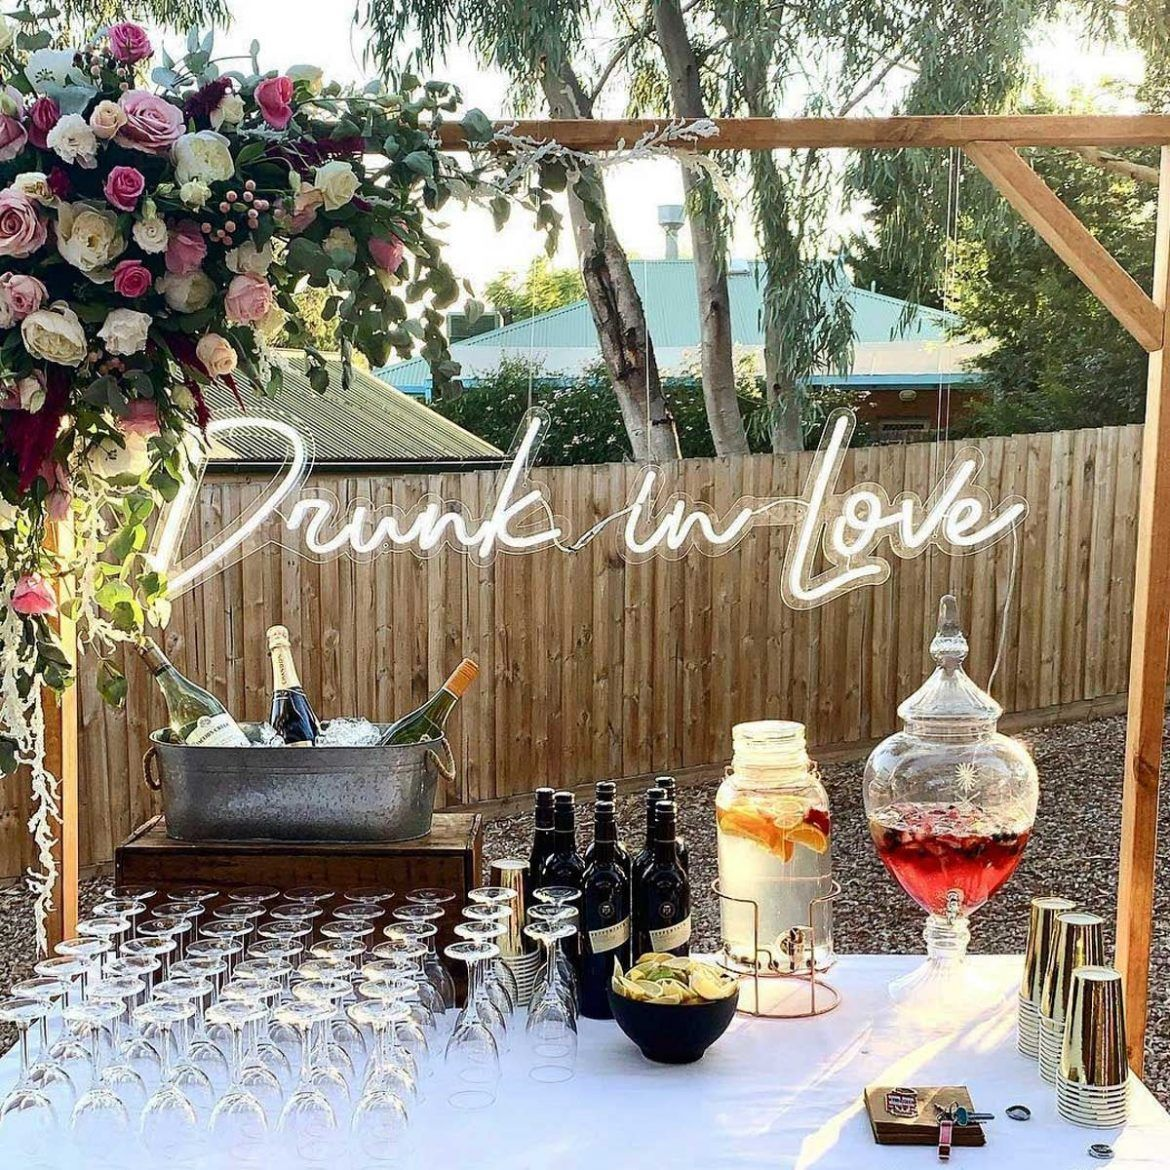 21 Best Neon Wedding Signs: Fun Light-Up Neon Signs for Cool Couples